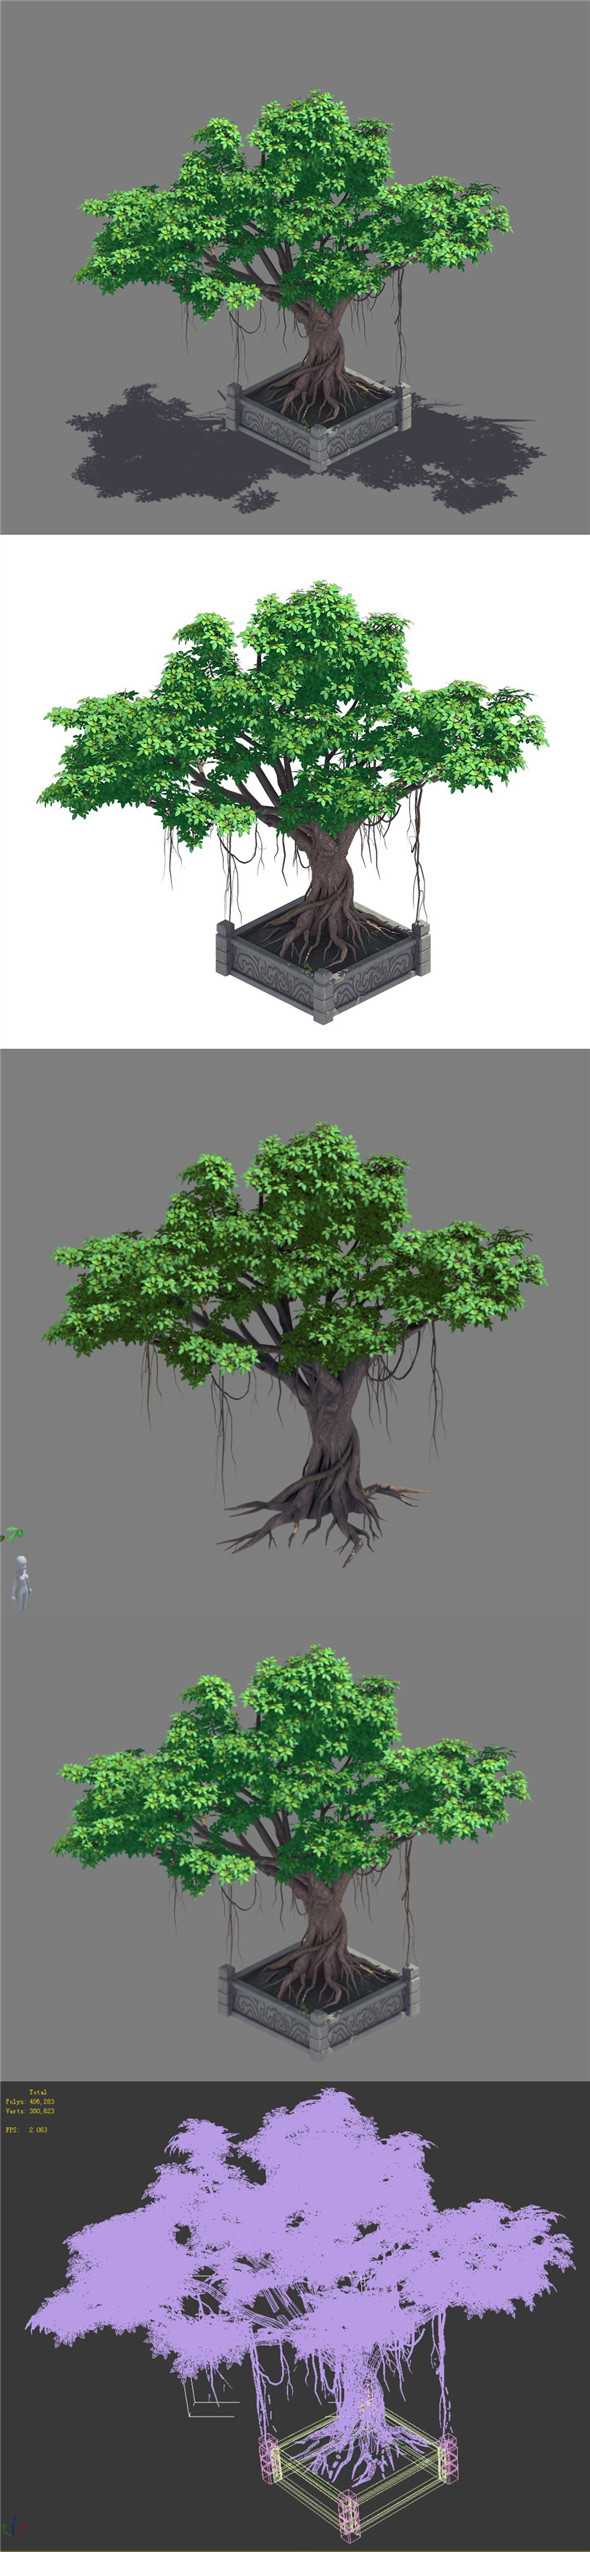 Plant - banyan tree 15 - 3DOcean Item for Sale